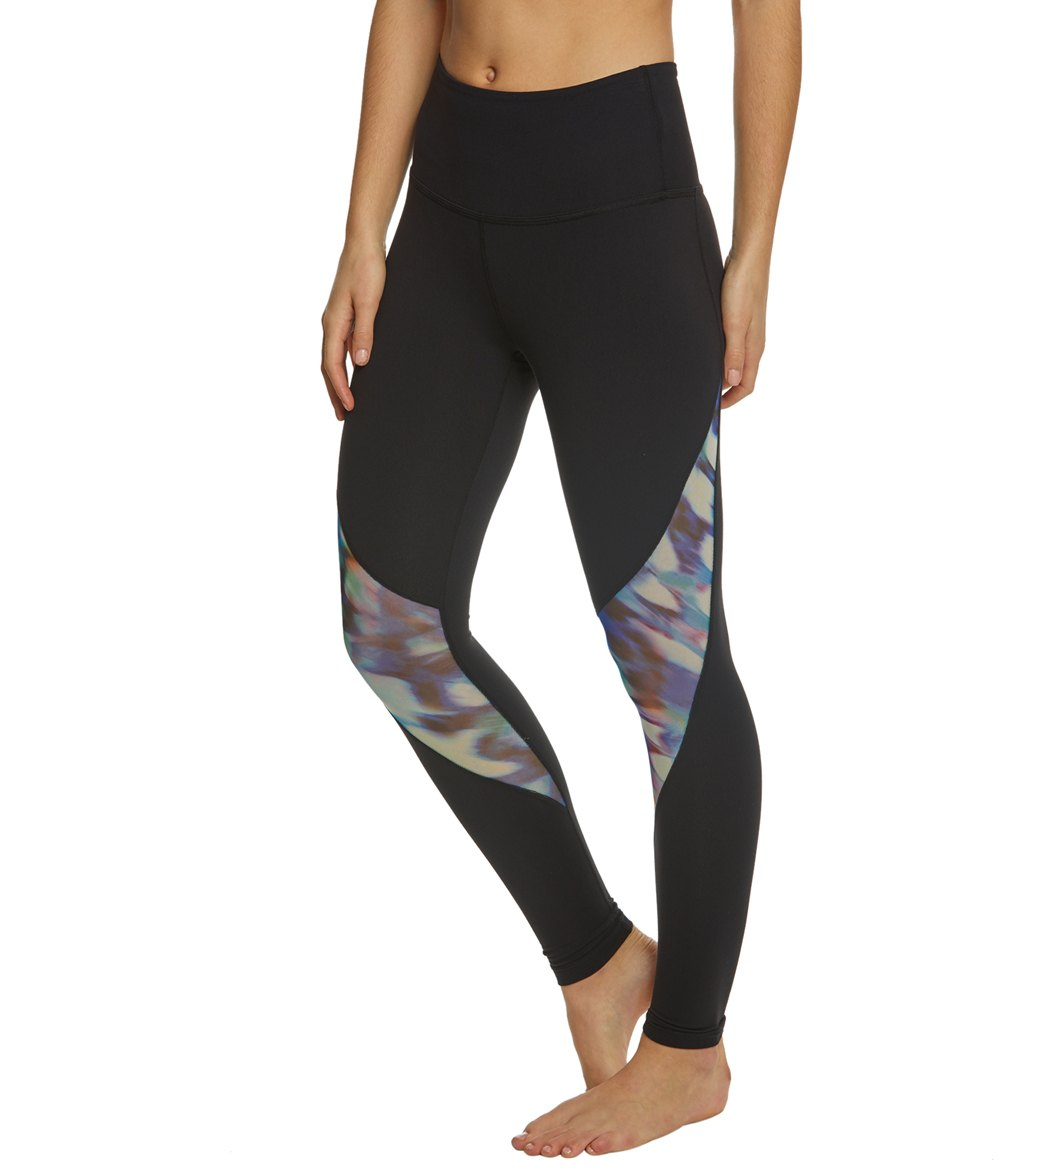 57a942e4 Beyond Yoga Prismatic High Waisted Midi Yoga Leggings at YogaOutlet ...